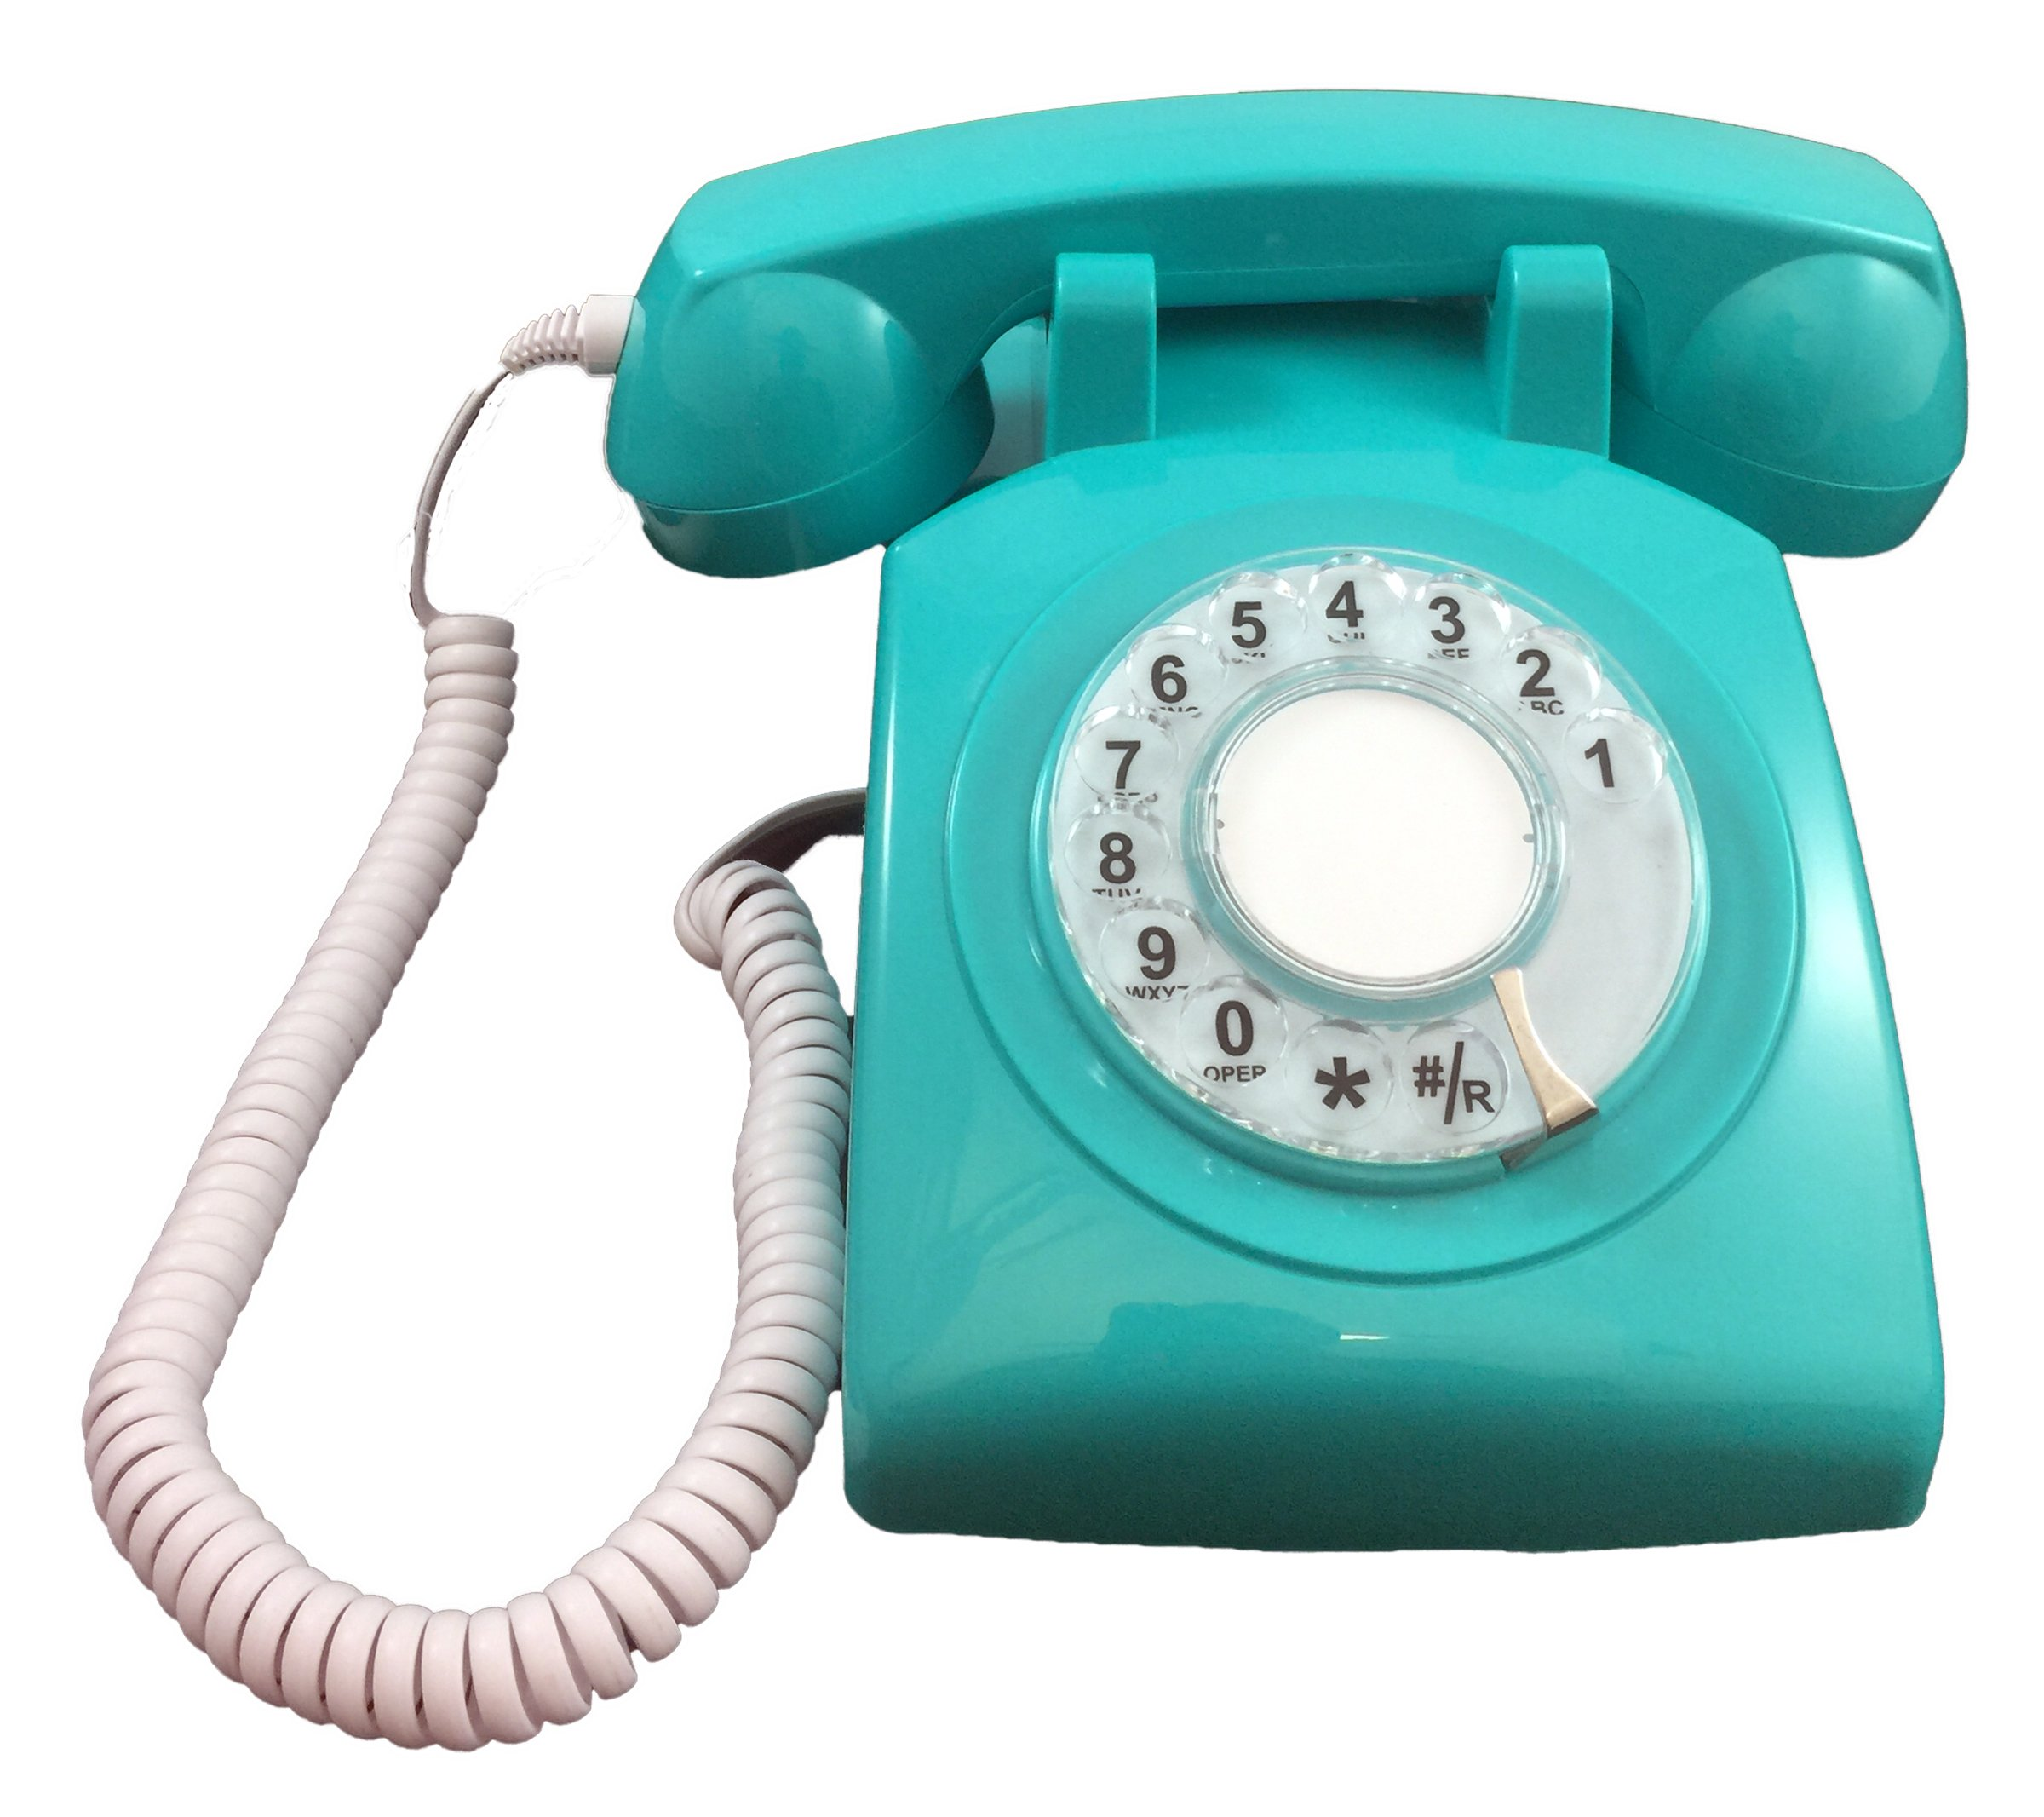 Modern Cool Decorate Princess Aqua Classic Old Model Timey School Antique Vintage Novelty Funky Looking Style Retro Rotary Dial Fashion Easy To Use House Office Landline Phone Replica Clone